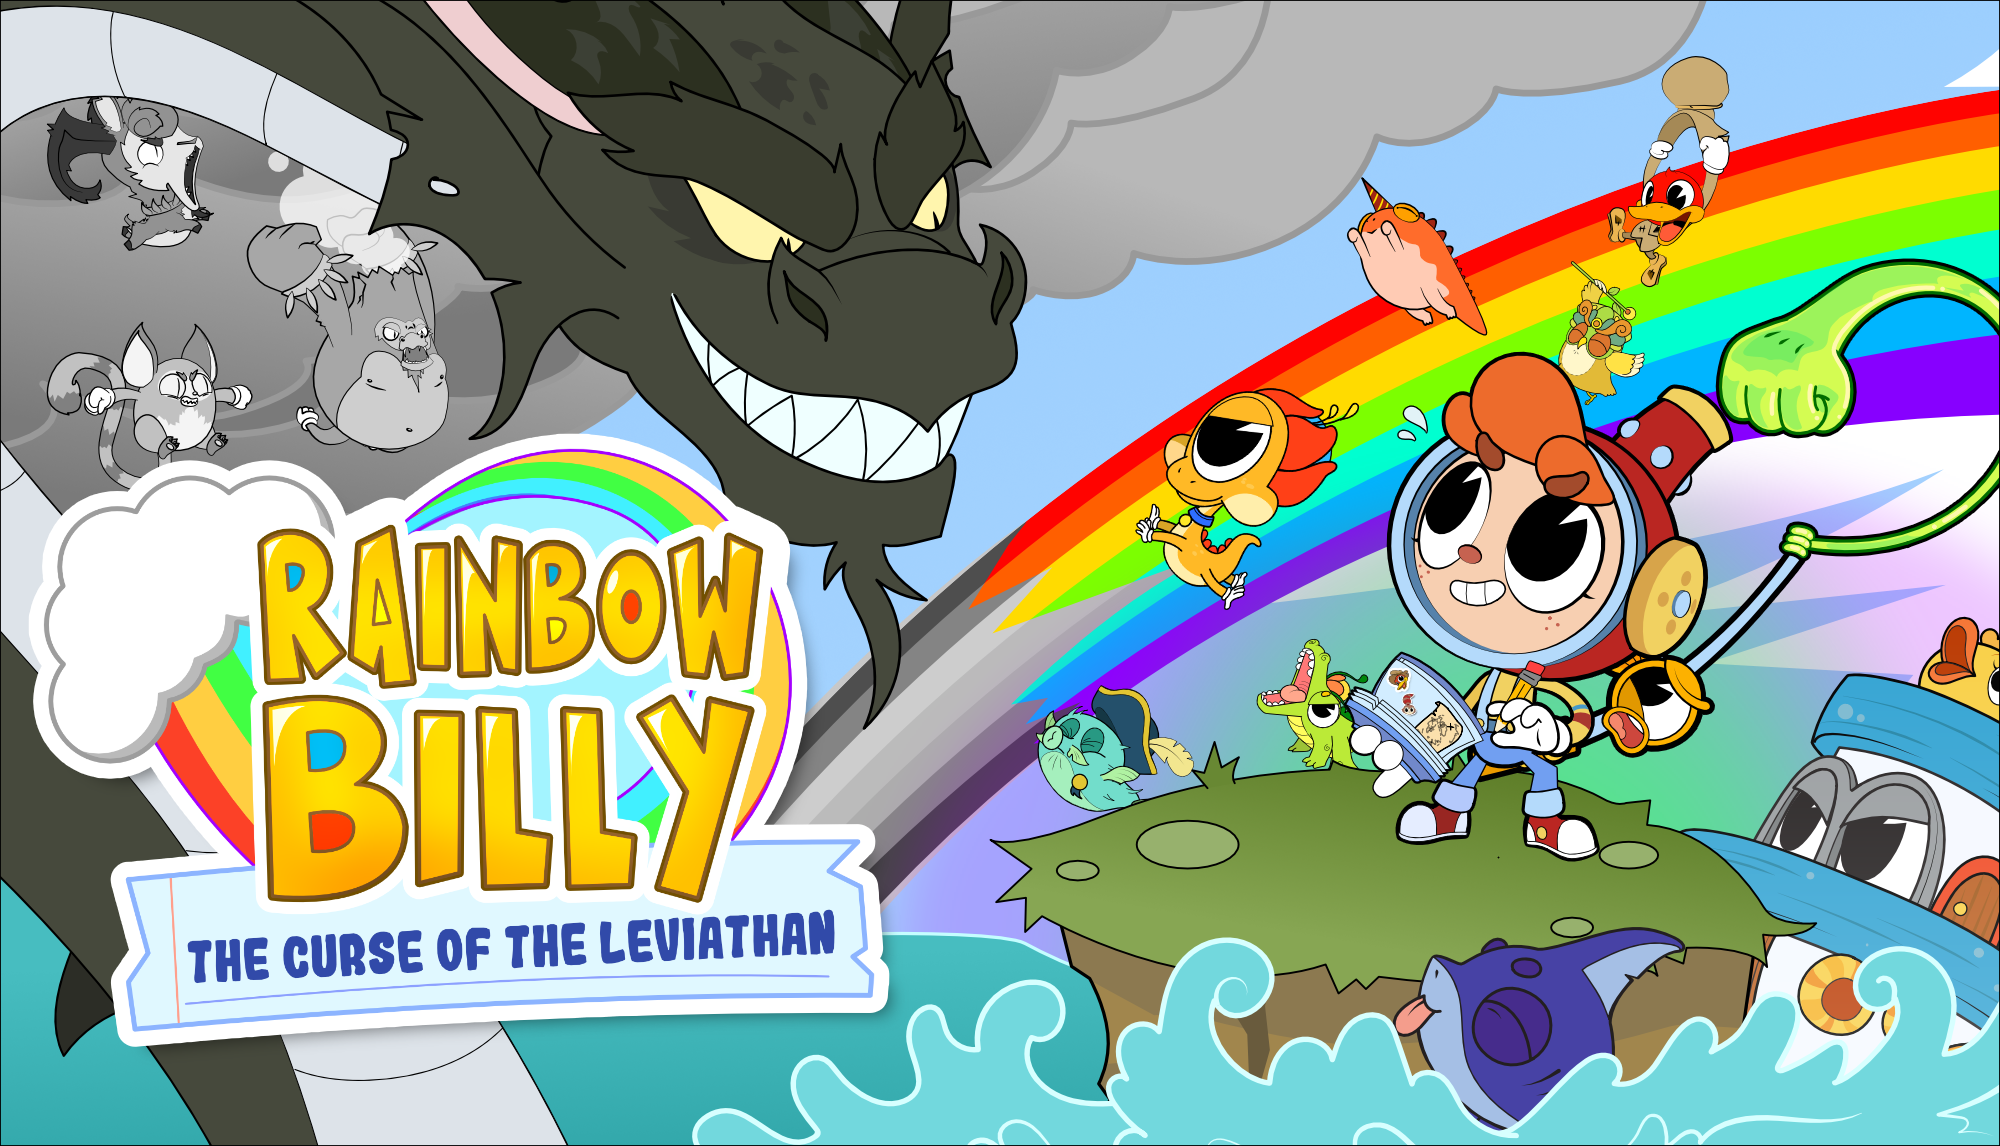 'Rainbow Billy: The Curse of the Leviathan' Launches Today (PC, PS4, XB1, Switch)